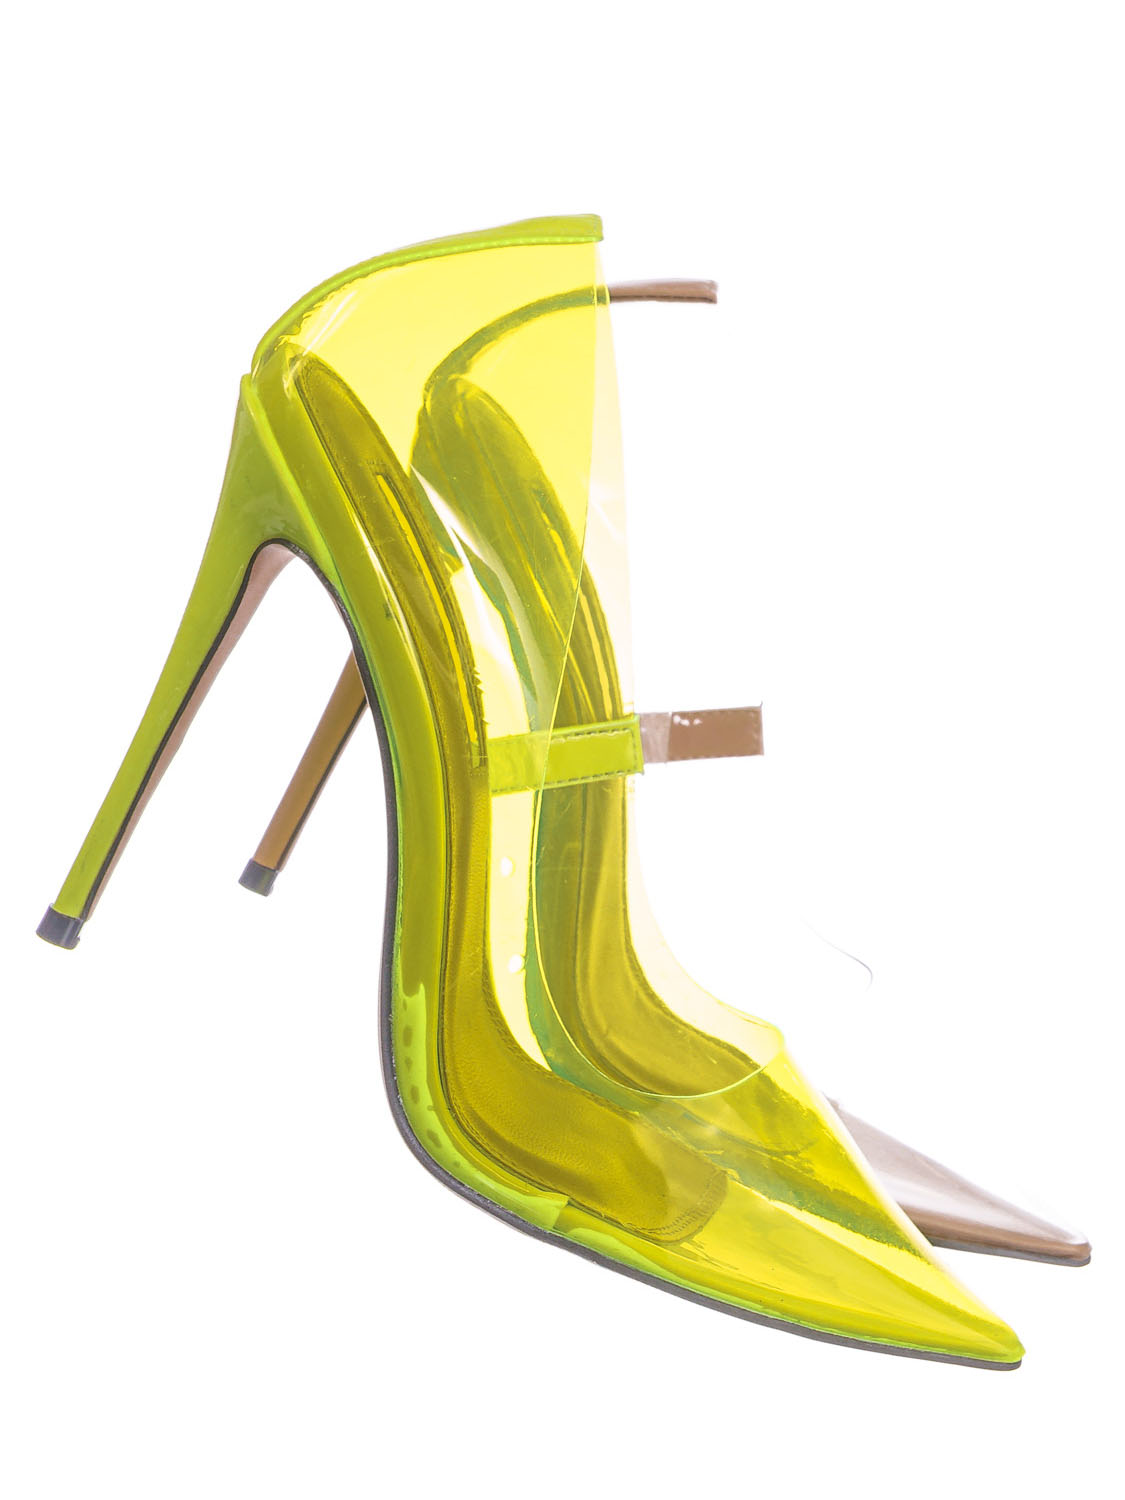 Clear PVC Transparent High Heels Lucite Ankle Strap Open Toe Wedges Neon Yellow